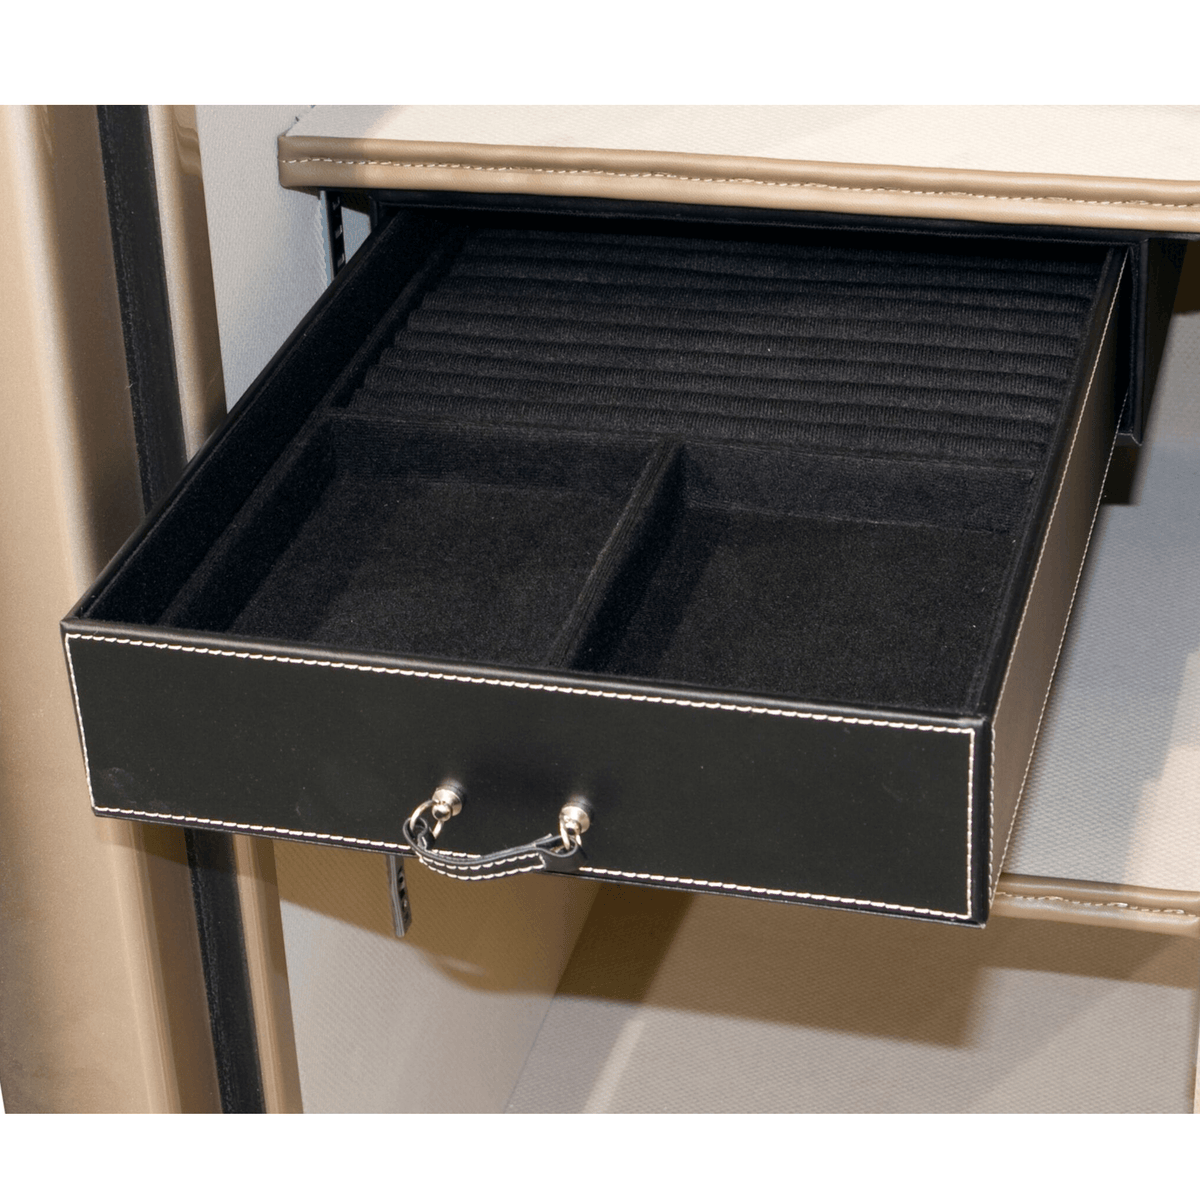 Accessory - Storage - Jewelry Drawer - 11.5 inch - under shelf mount - 35-50 size safes